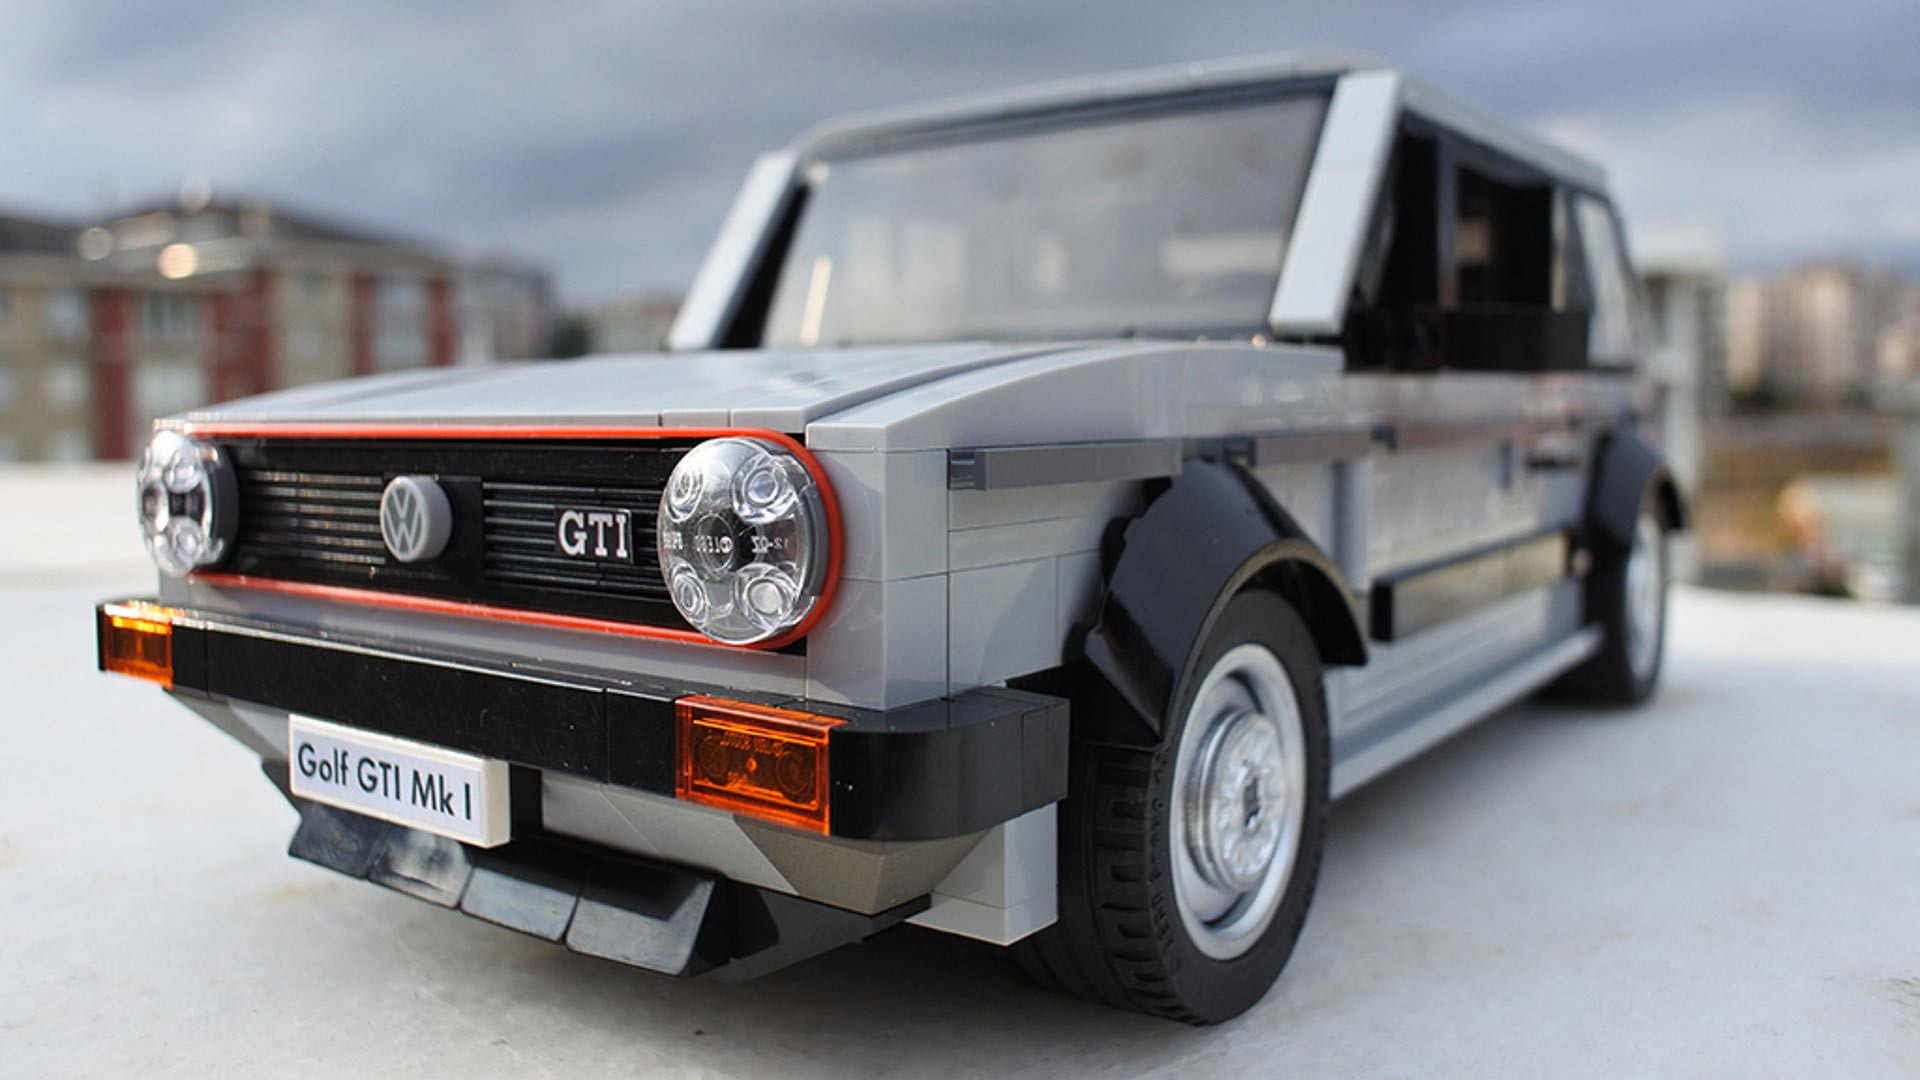 lego volkswagen golf gti mk1 is the ultimate retro toy performancedrive. Black Bedroom Furniture Sets. Home Design Ideas